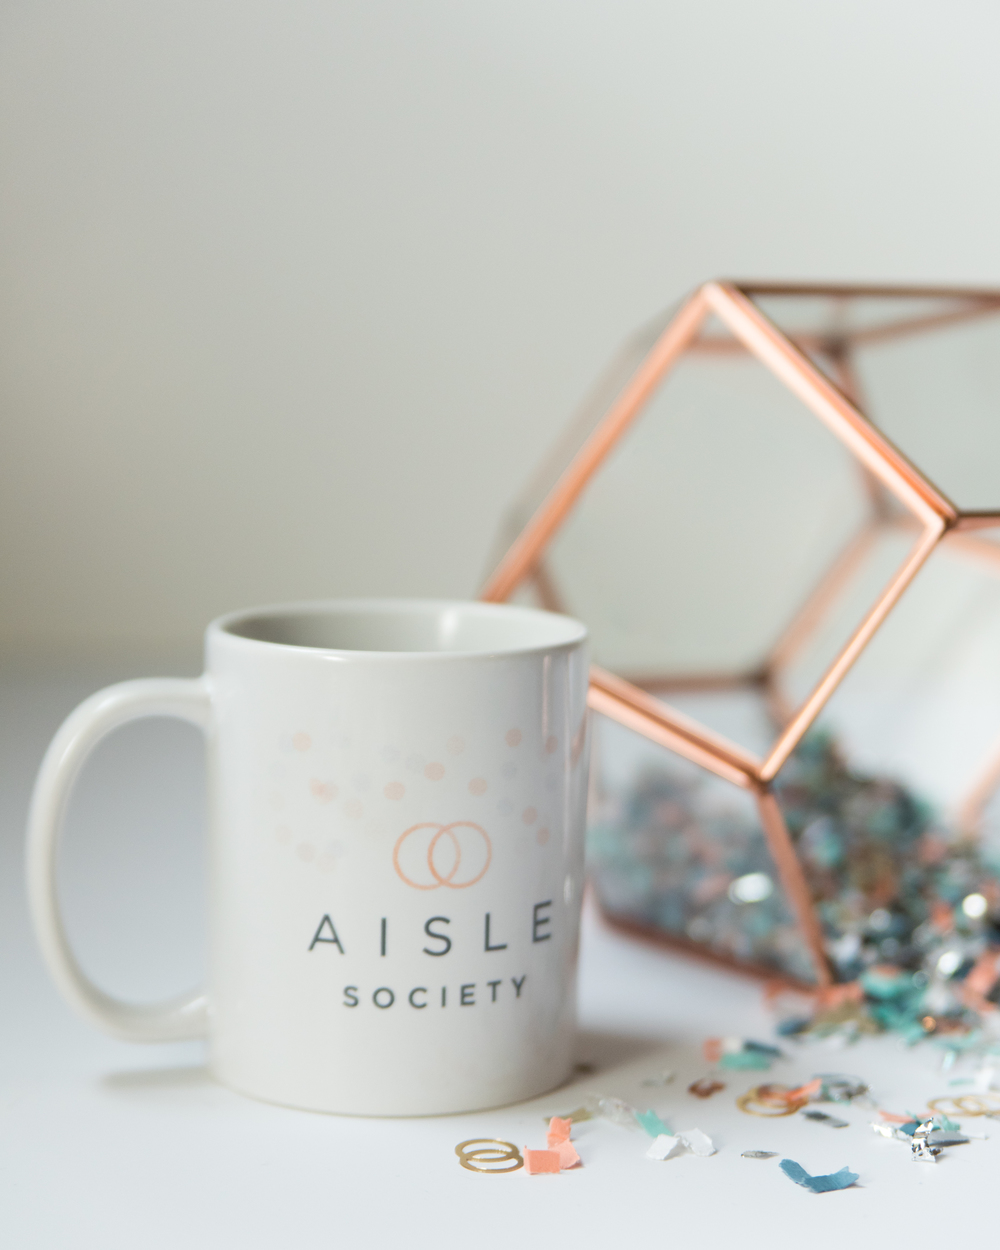 Aisle Society Pop Up Shop.Products-150.jpg